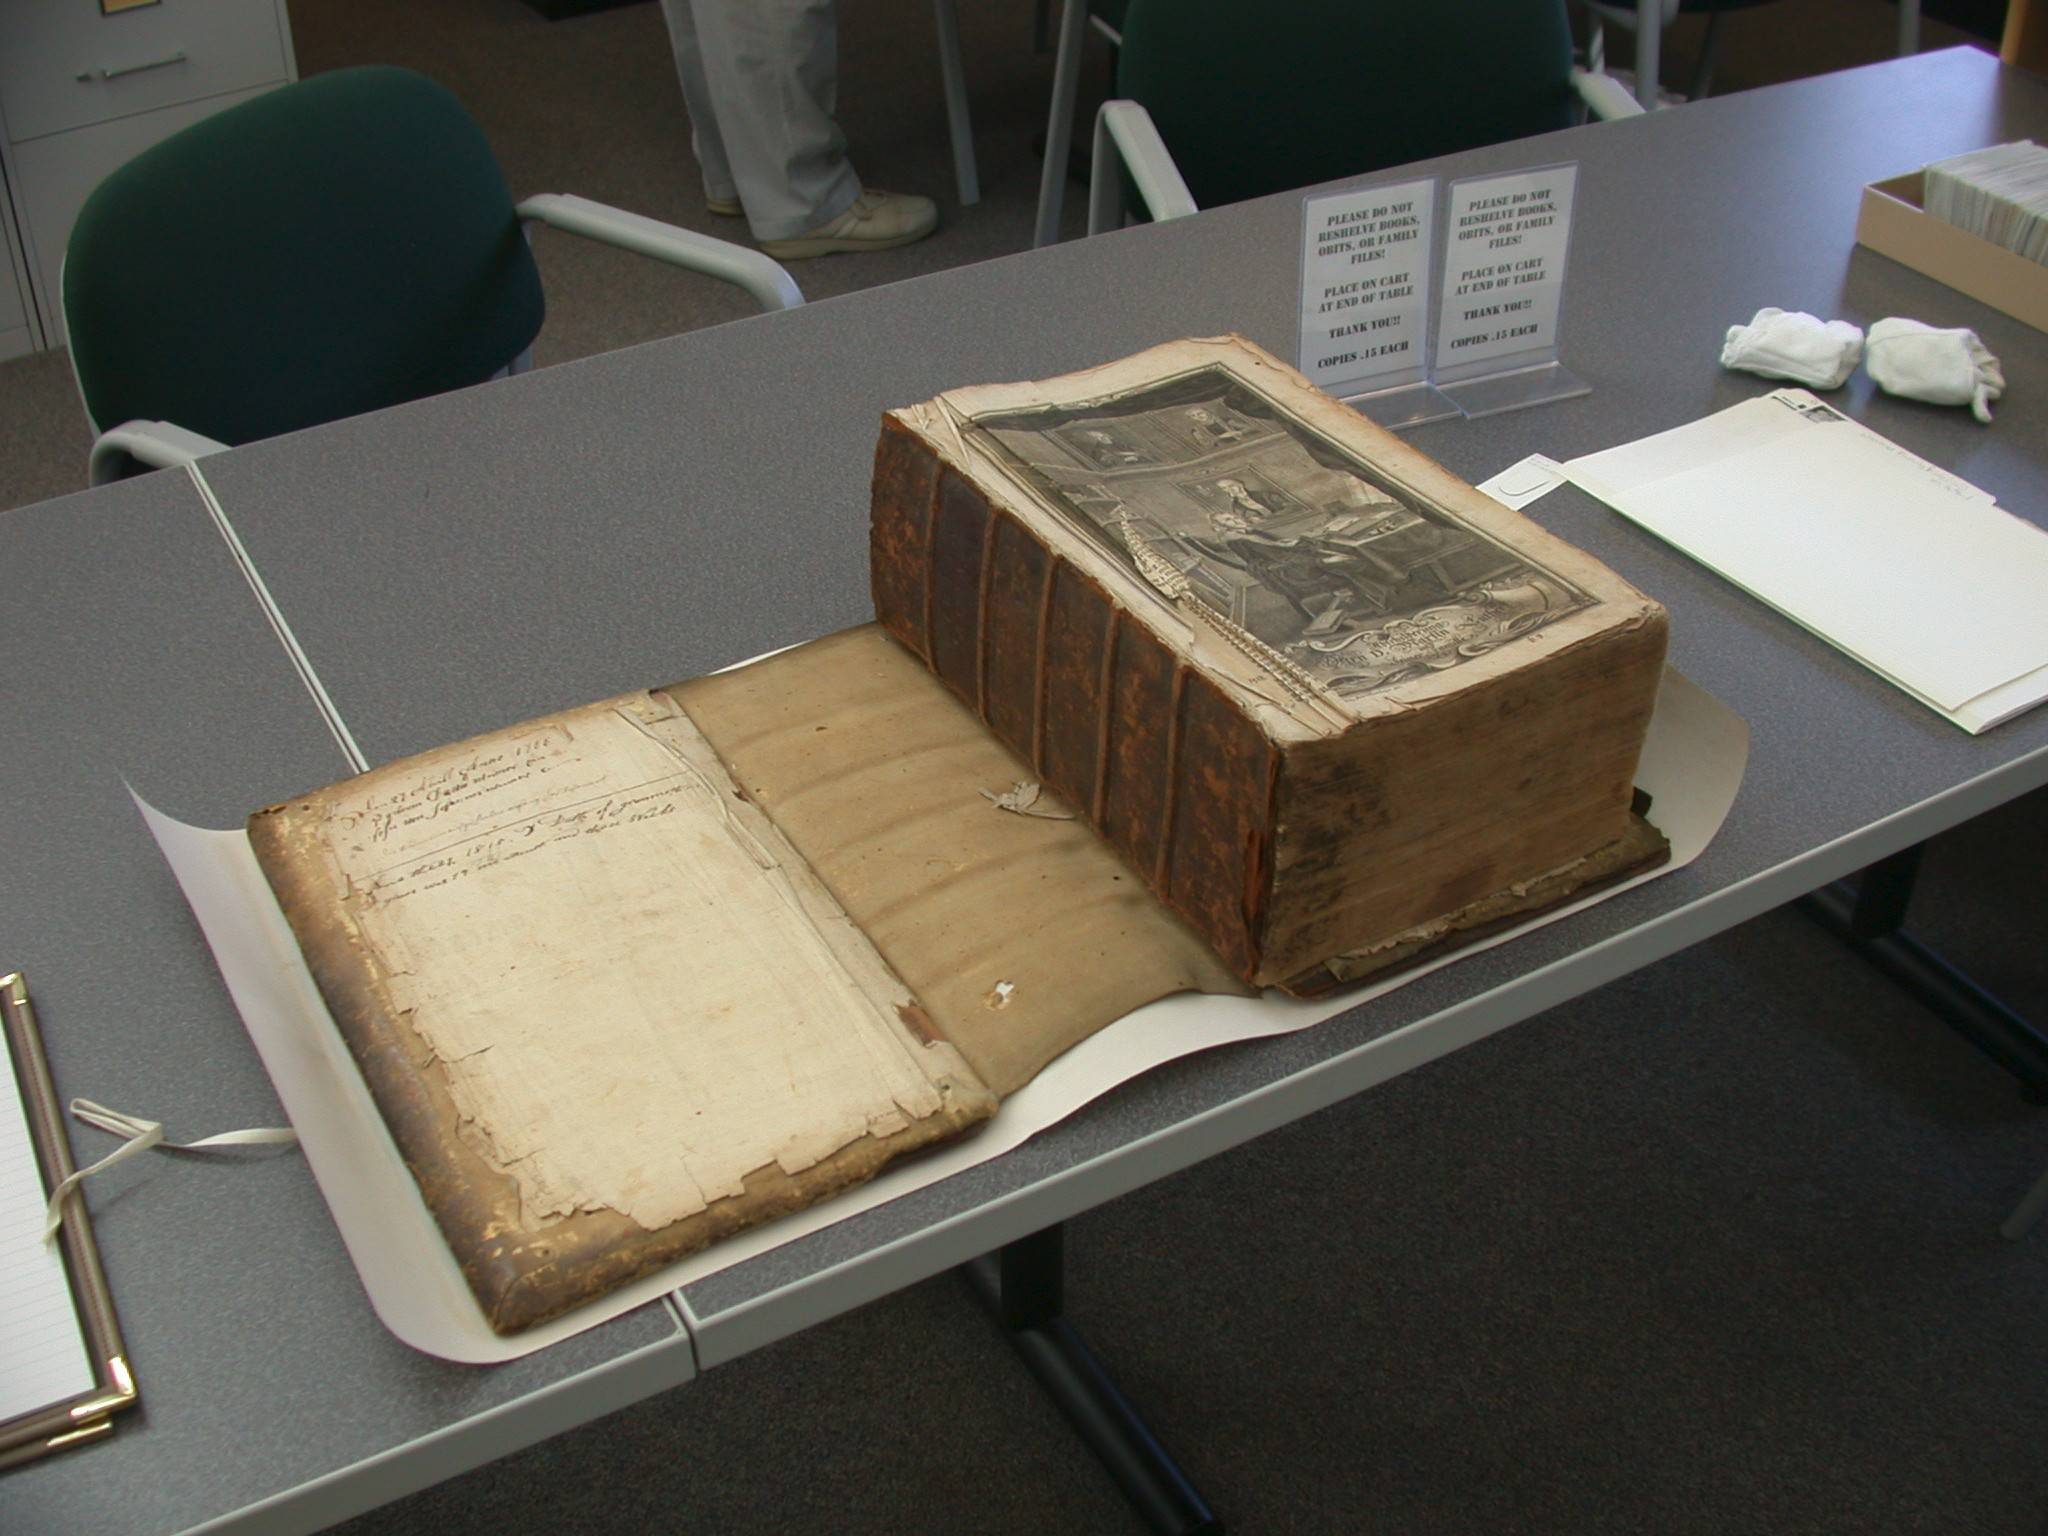 Carefully preserved by the Somerset (Pennsylvania) County Historical Society, this 1765 Martin Luther German family Bible of Dan Wertz's great-great-great grandmother, Sarah Weimer, contained the names and birth dates of relatives dating to 1840.